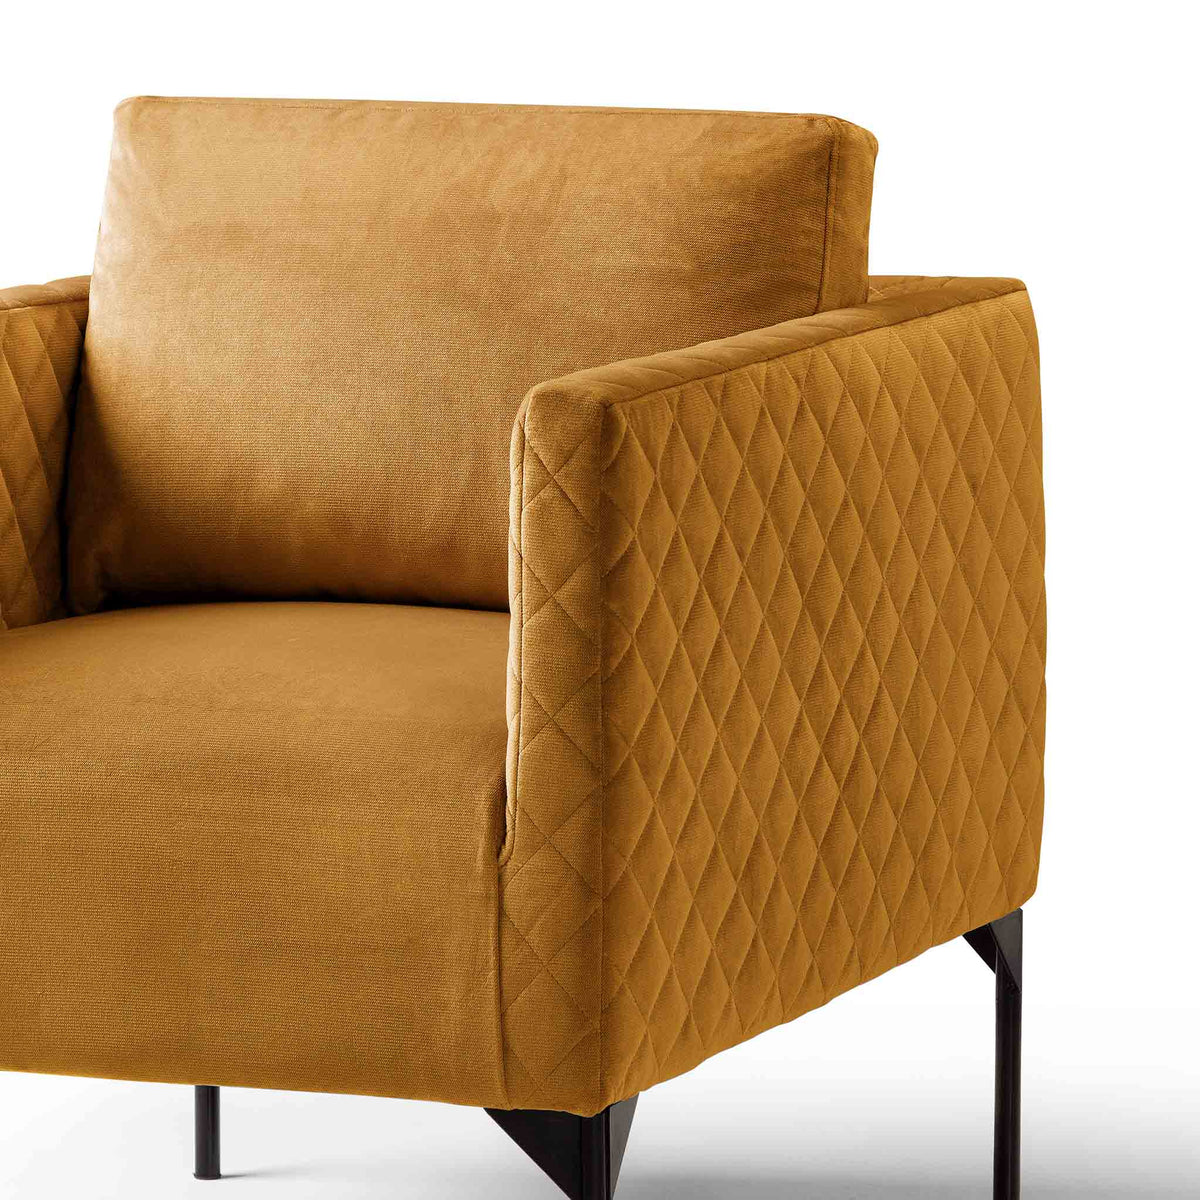 close up of the padded seat and back cushion on the Bali Gold Velvet Accent Chair